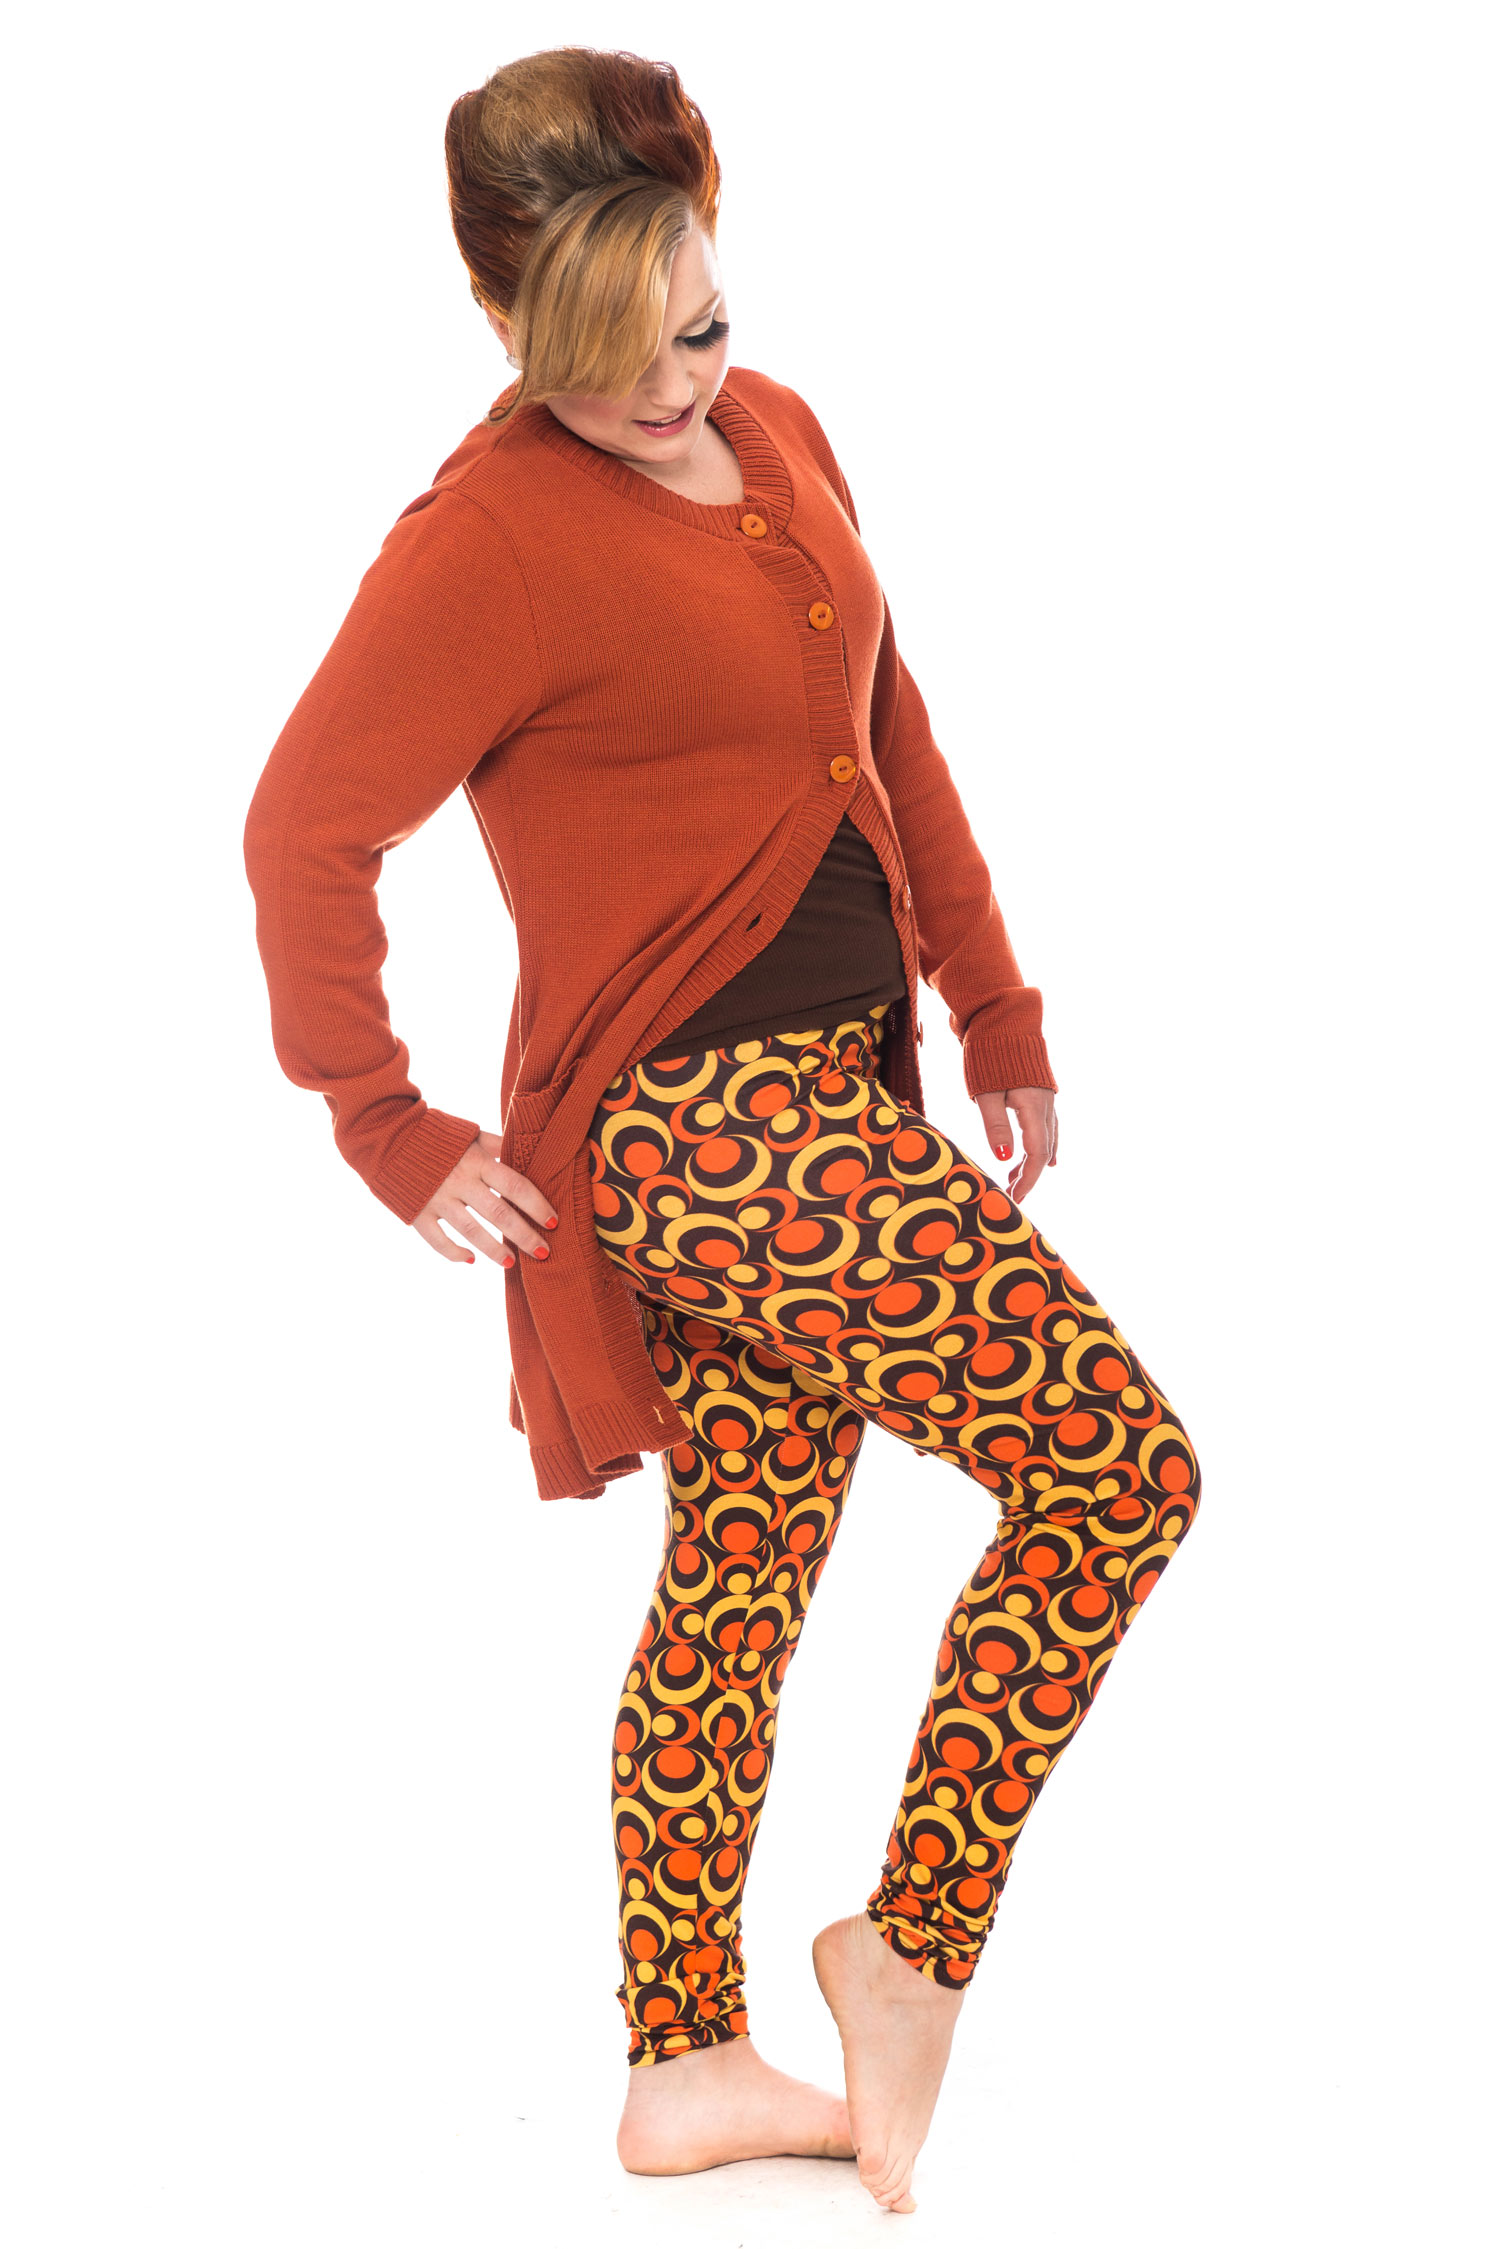 Tant Sofia-Lo leggings orange, Cissi och Selma